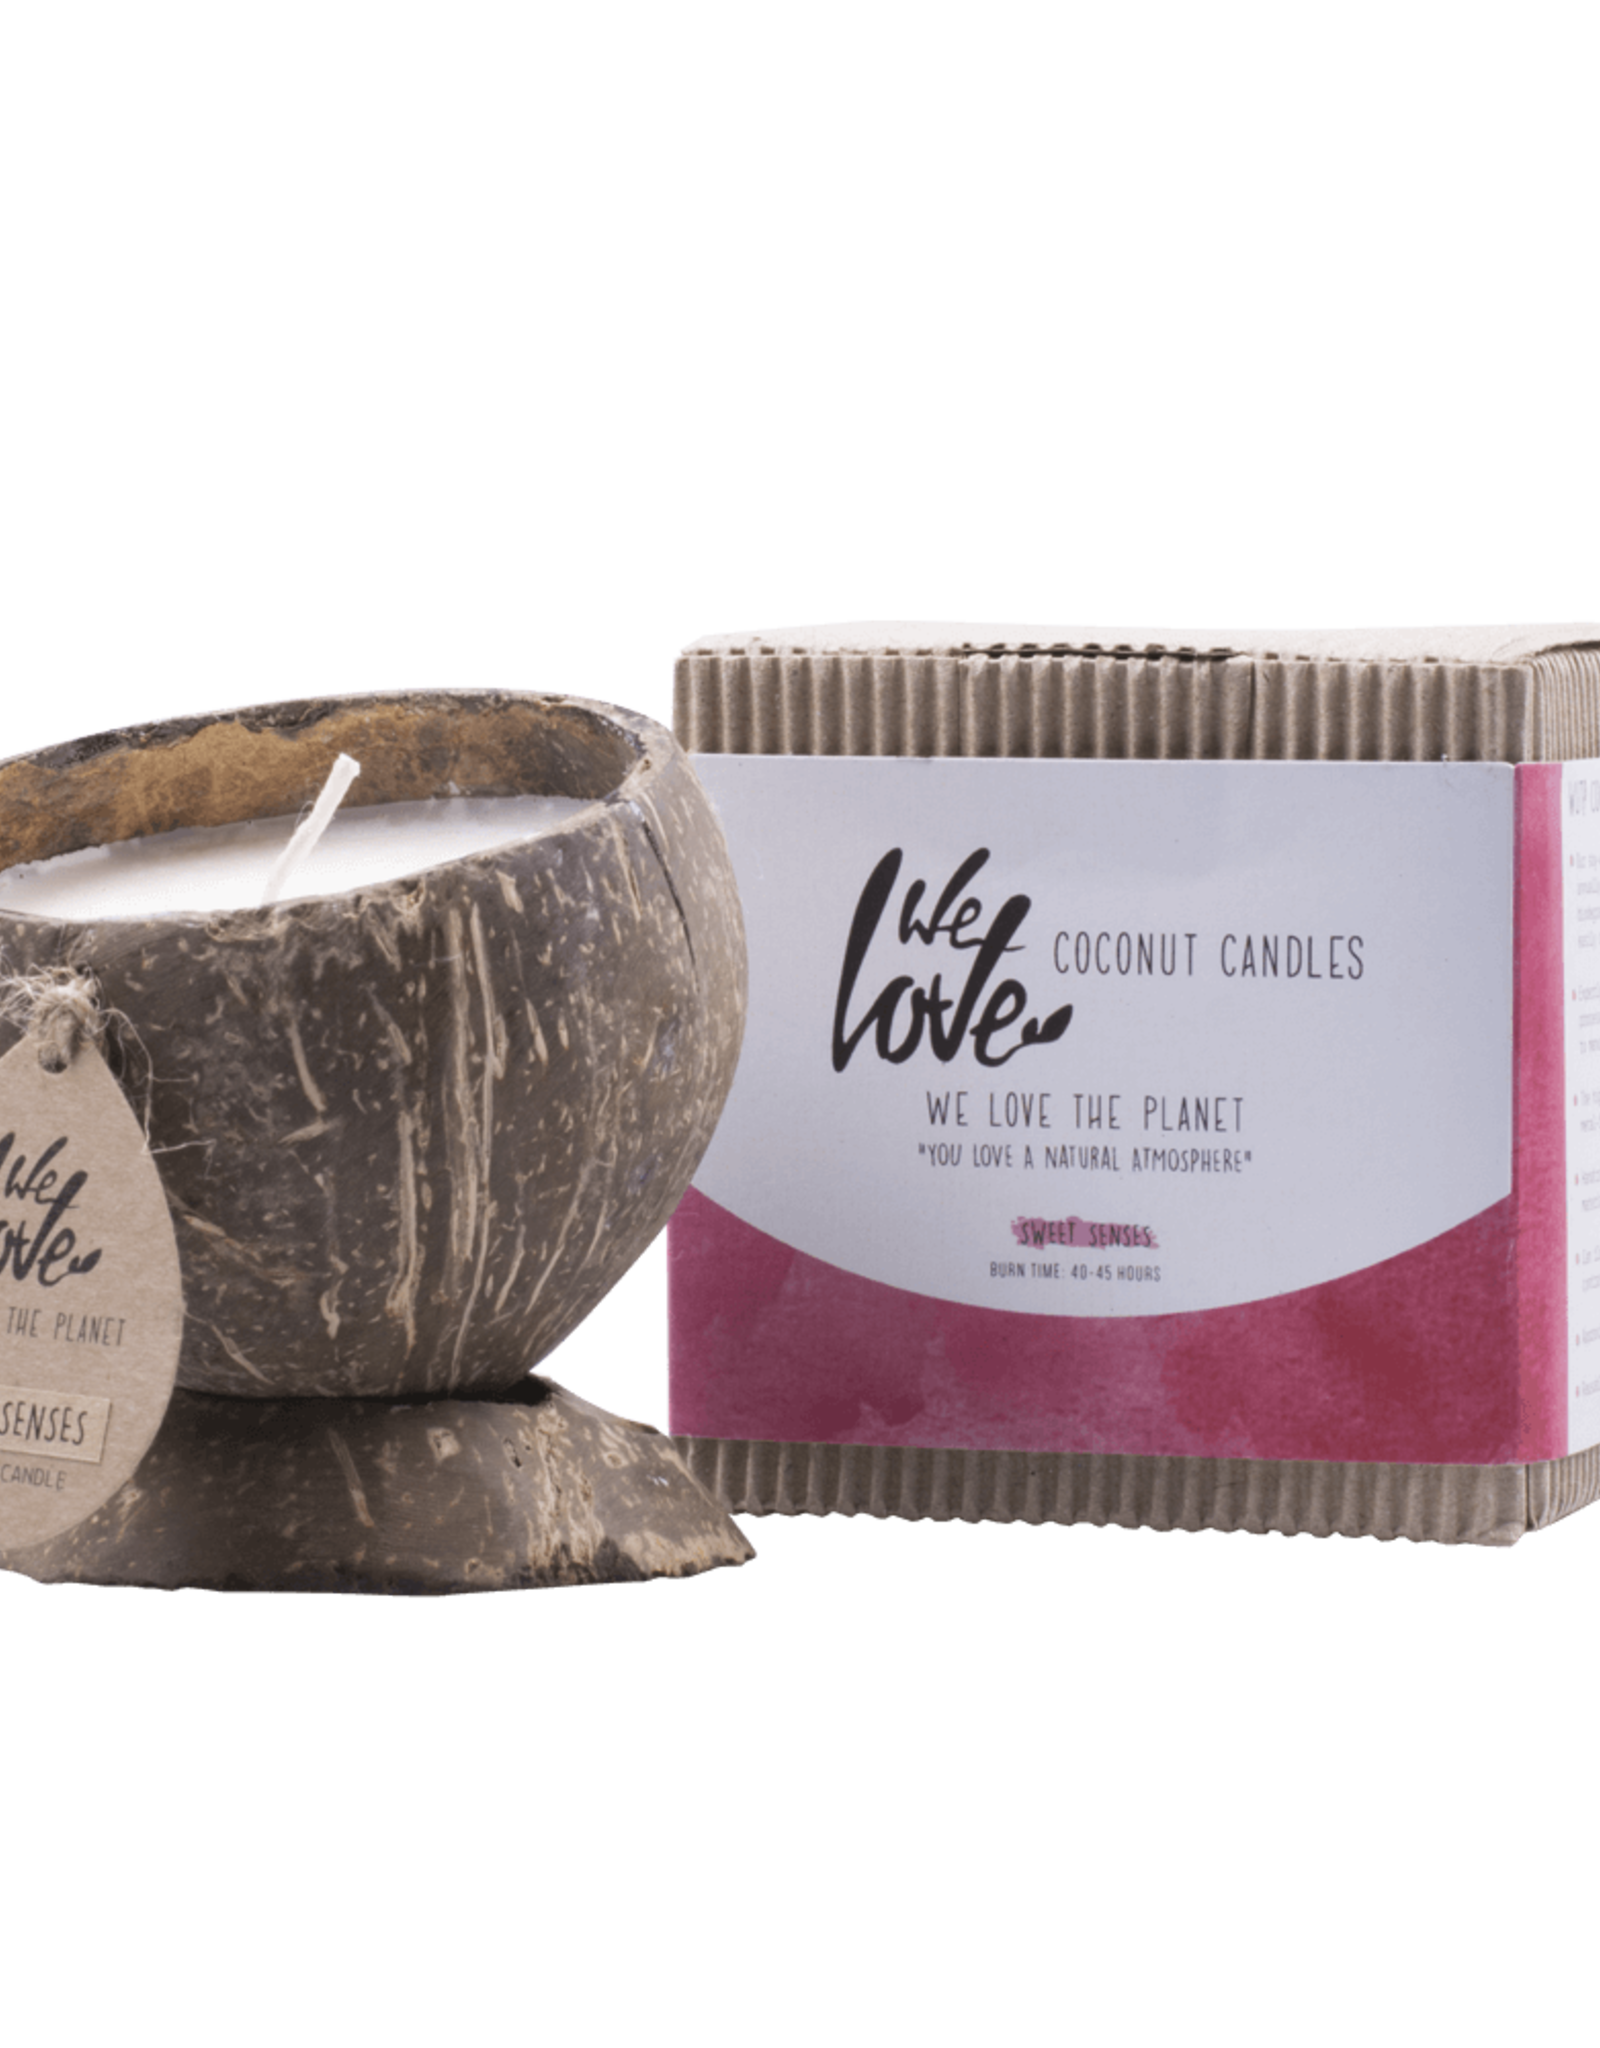 We love the planet We Love The Planet Soya Wax Coconut candle Sweet Senses